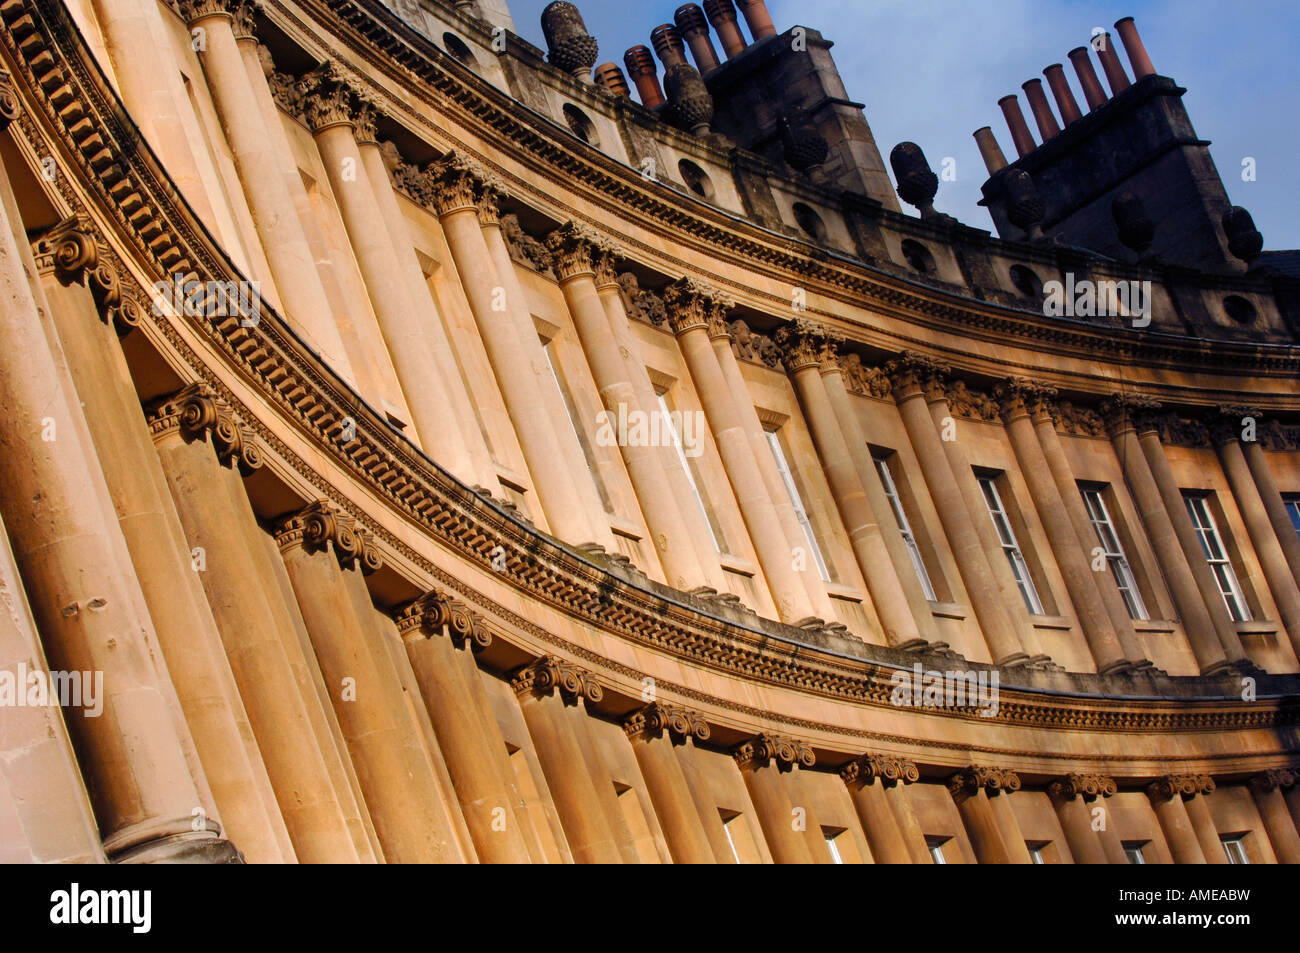 The famous landmark of Bath: The Circus bathed in morning